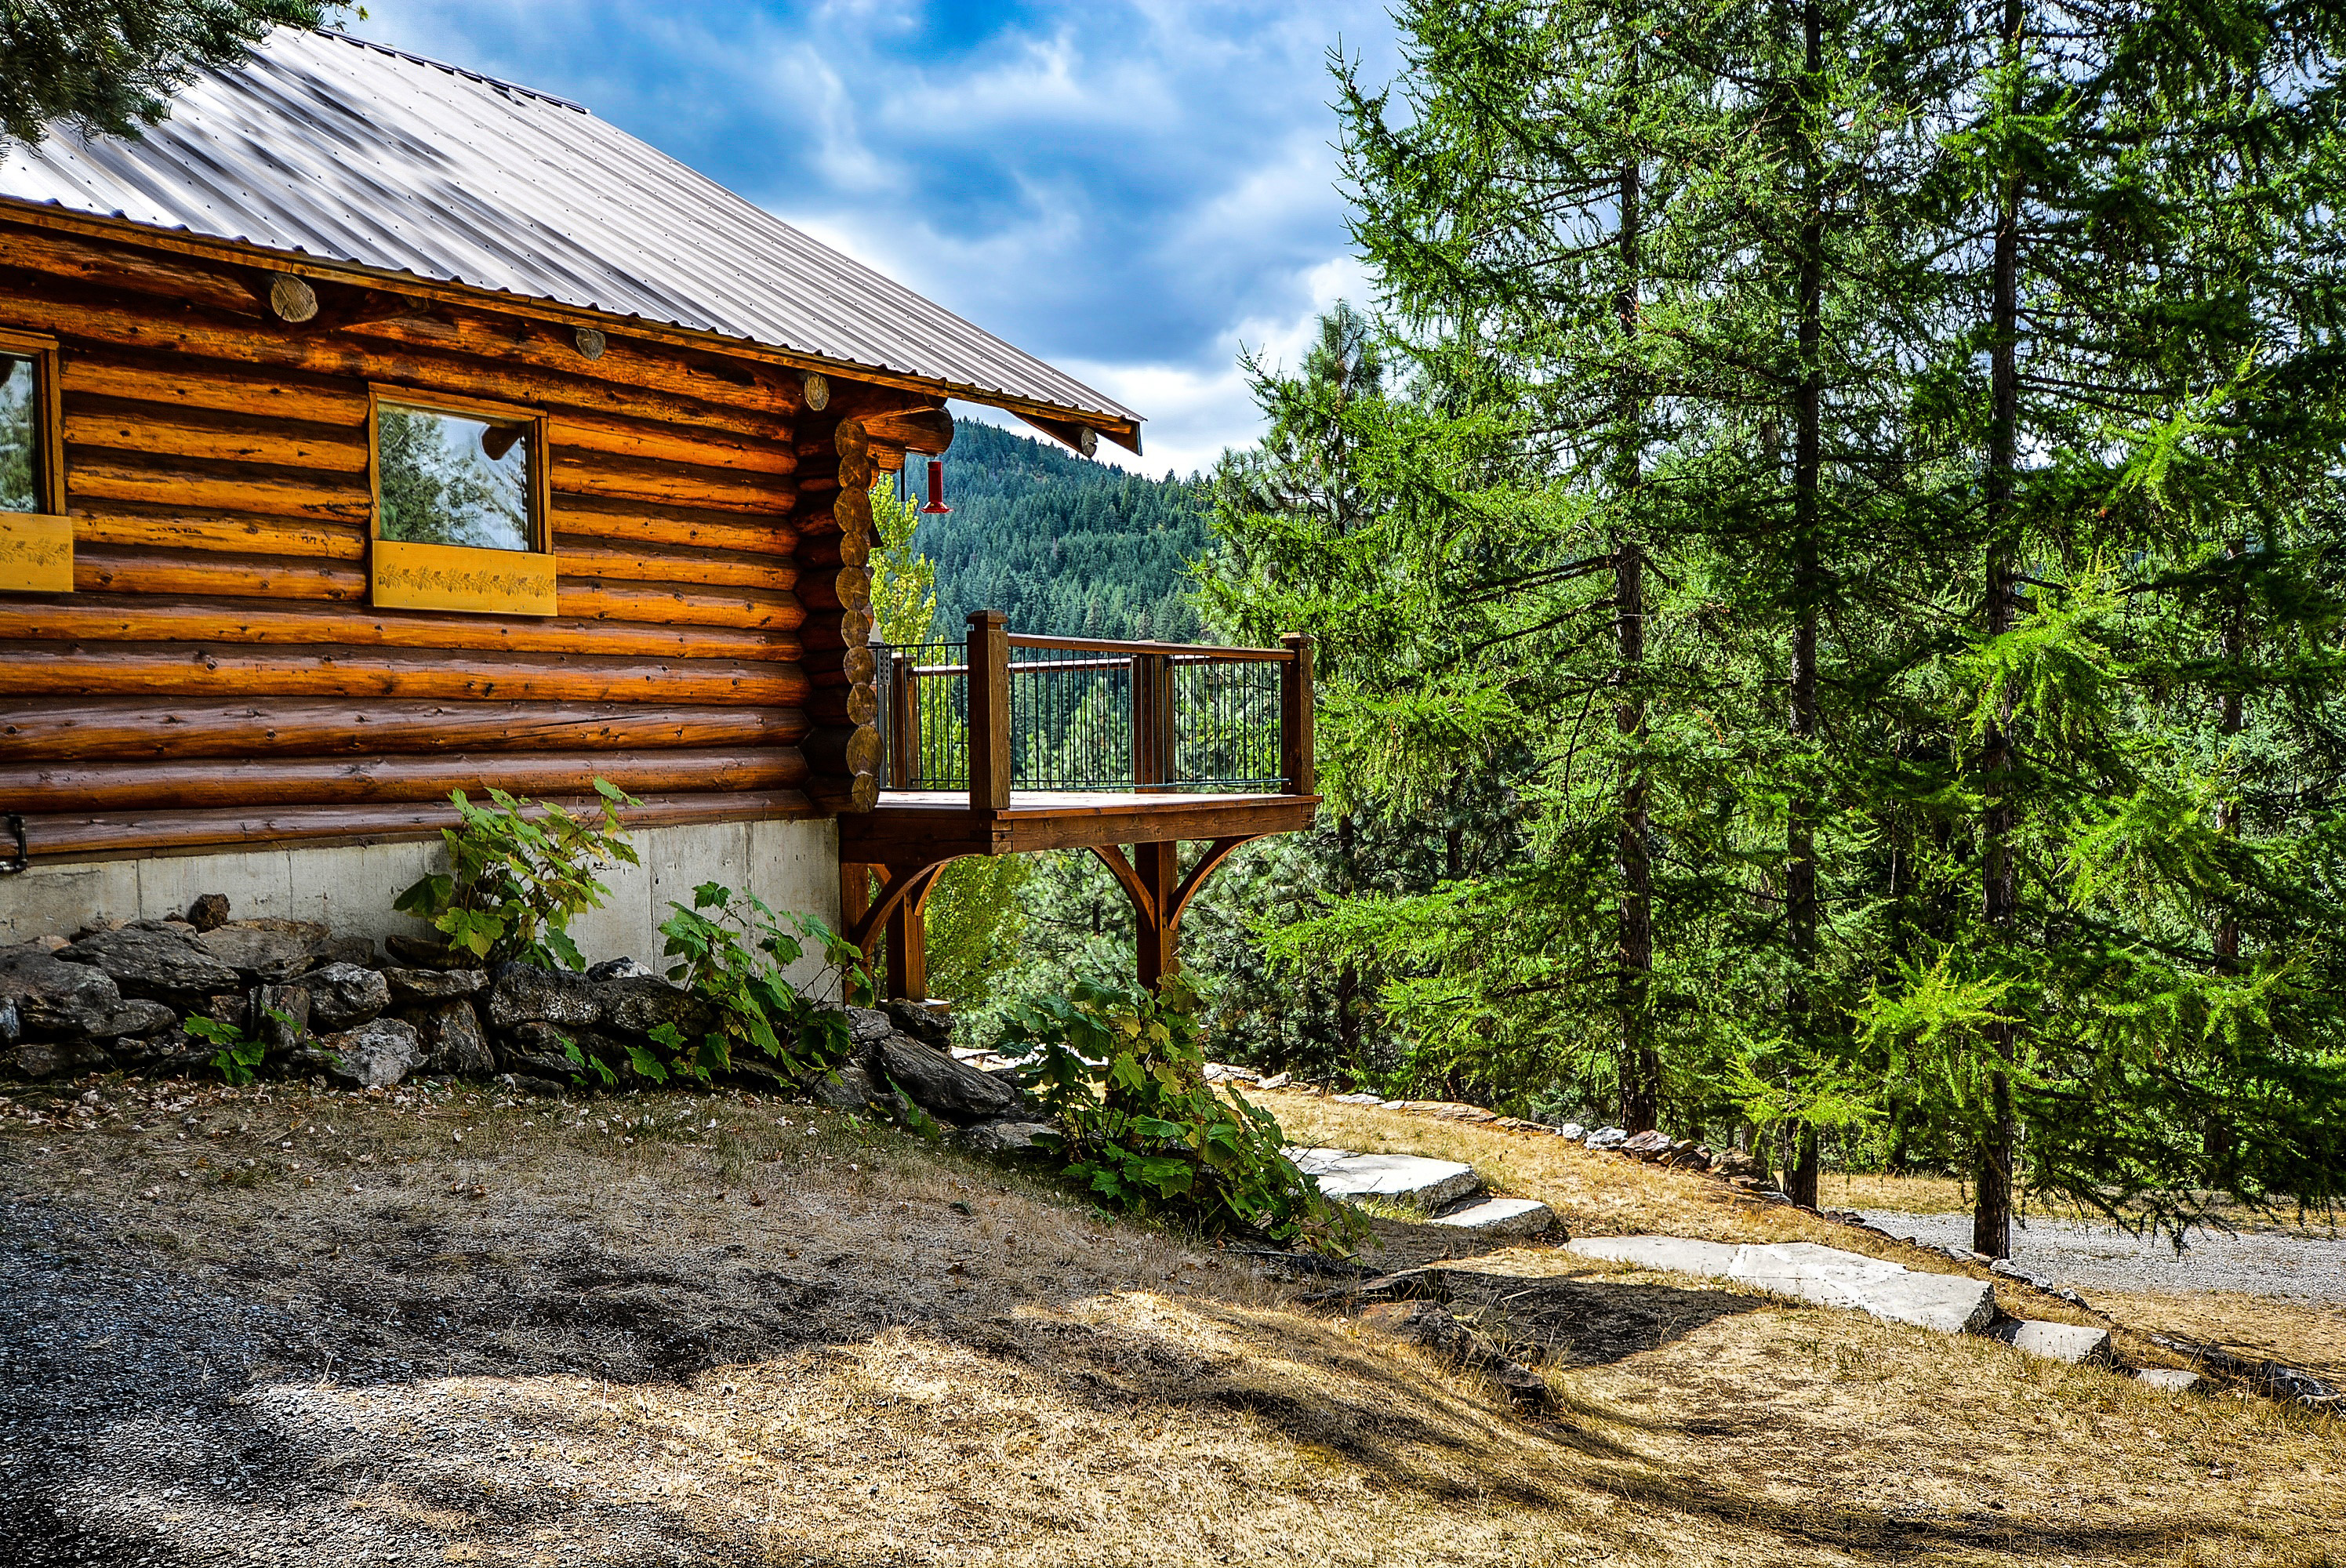 Rustic Cabin in the woods landscape image - Free stock photo - Public  Domain photo - CC0 Images